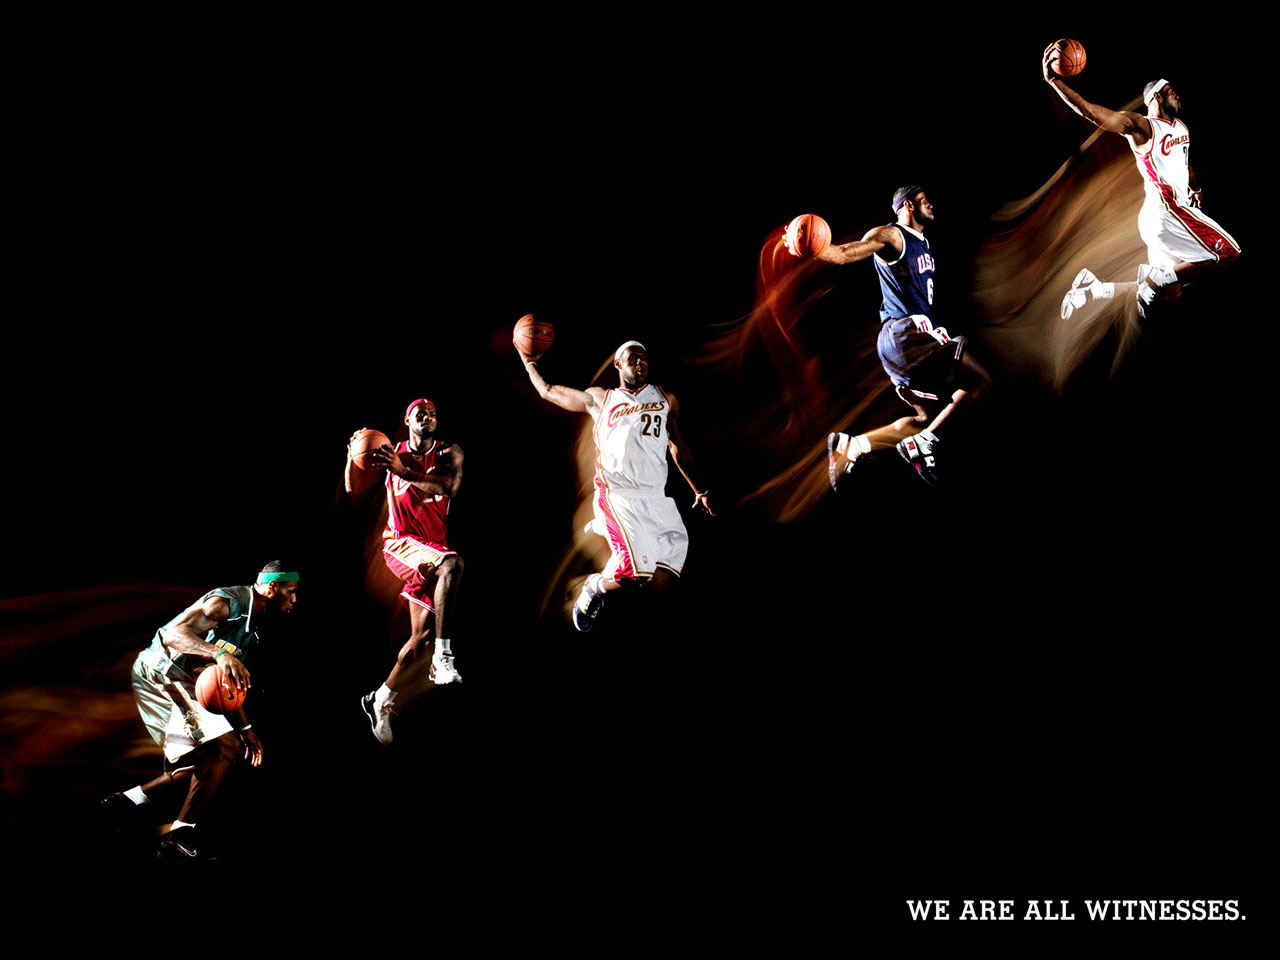 HDMOU TOP 23 LEBRON JAMES WALLPAPERS IN HD 1280x960